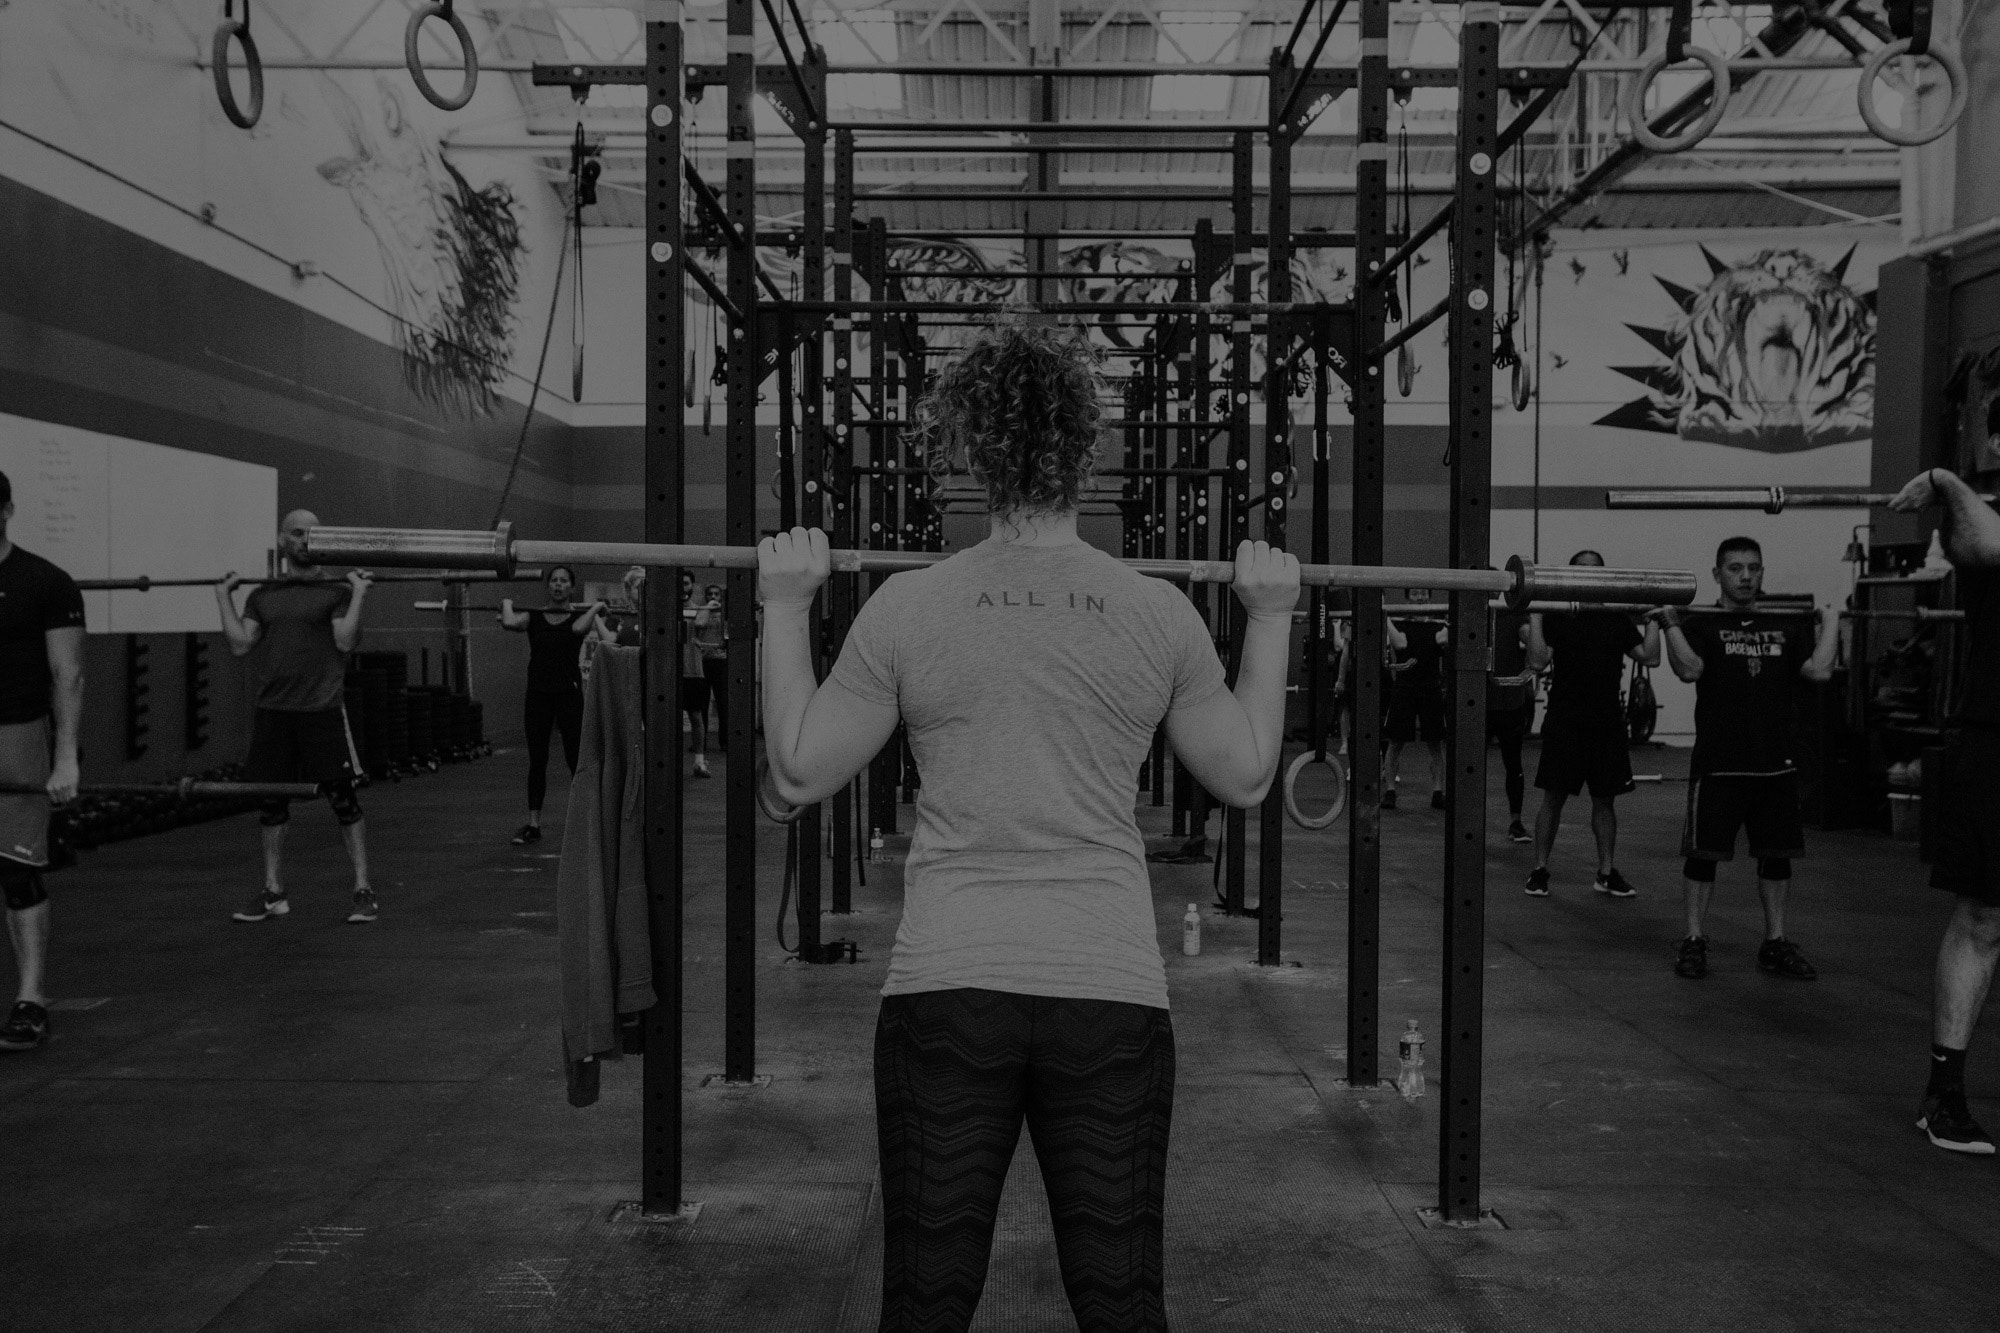 CrossFit San Francisco